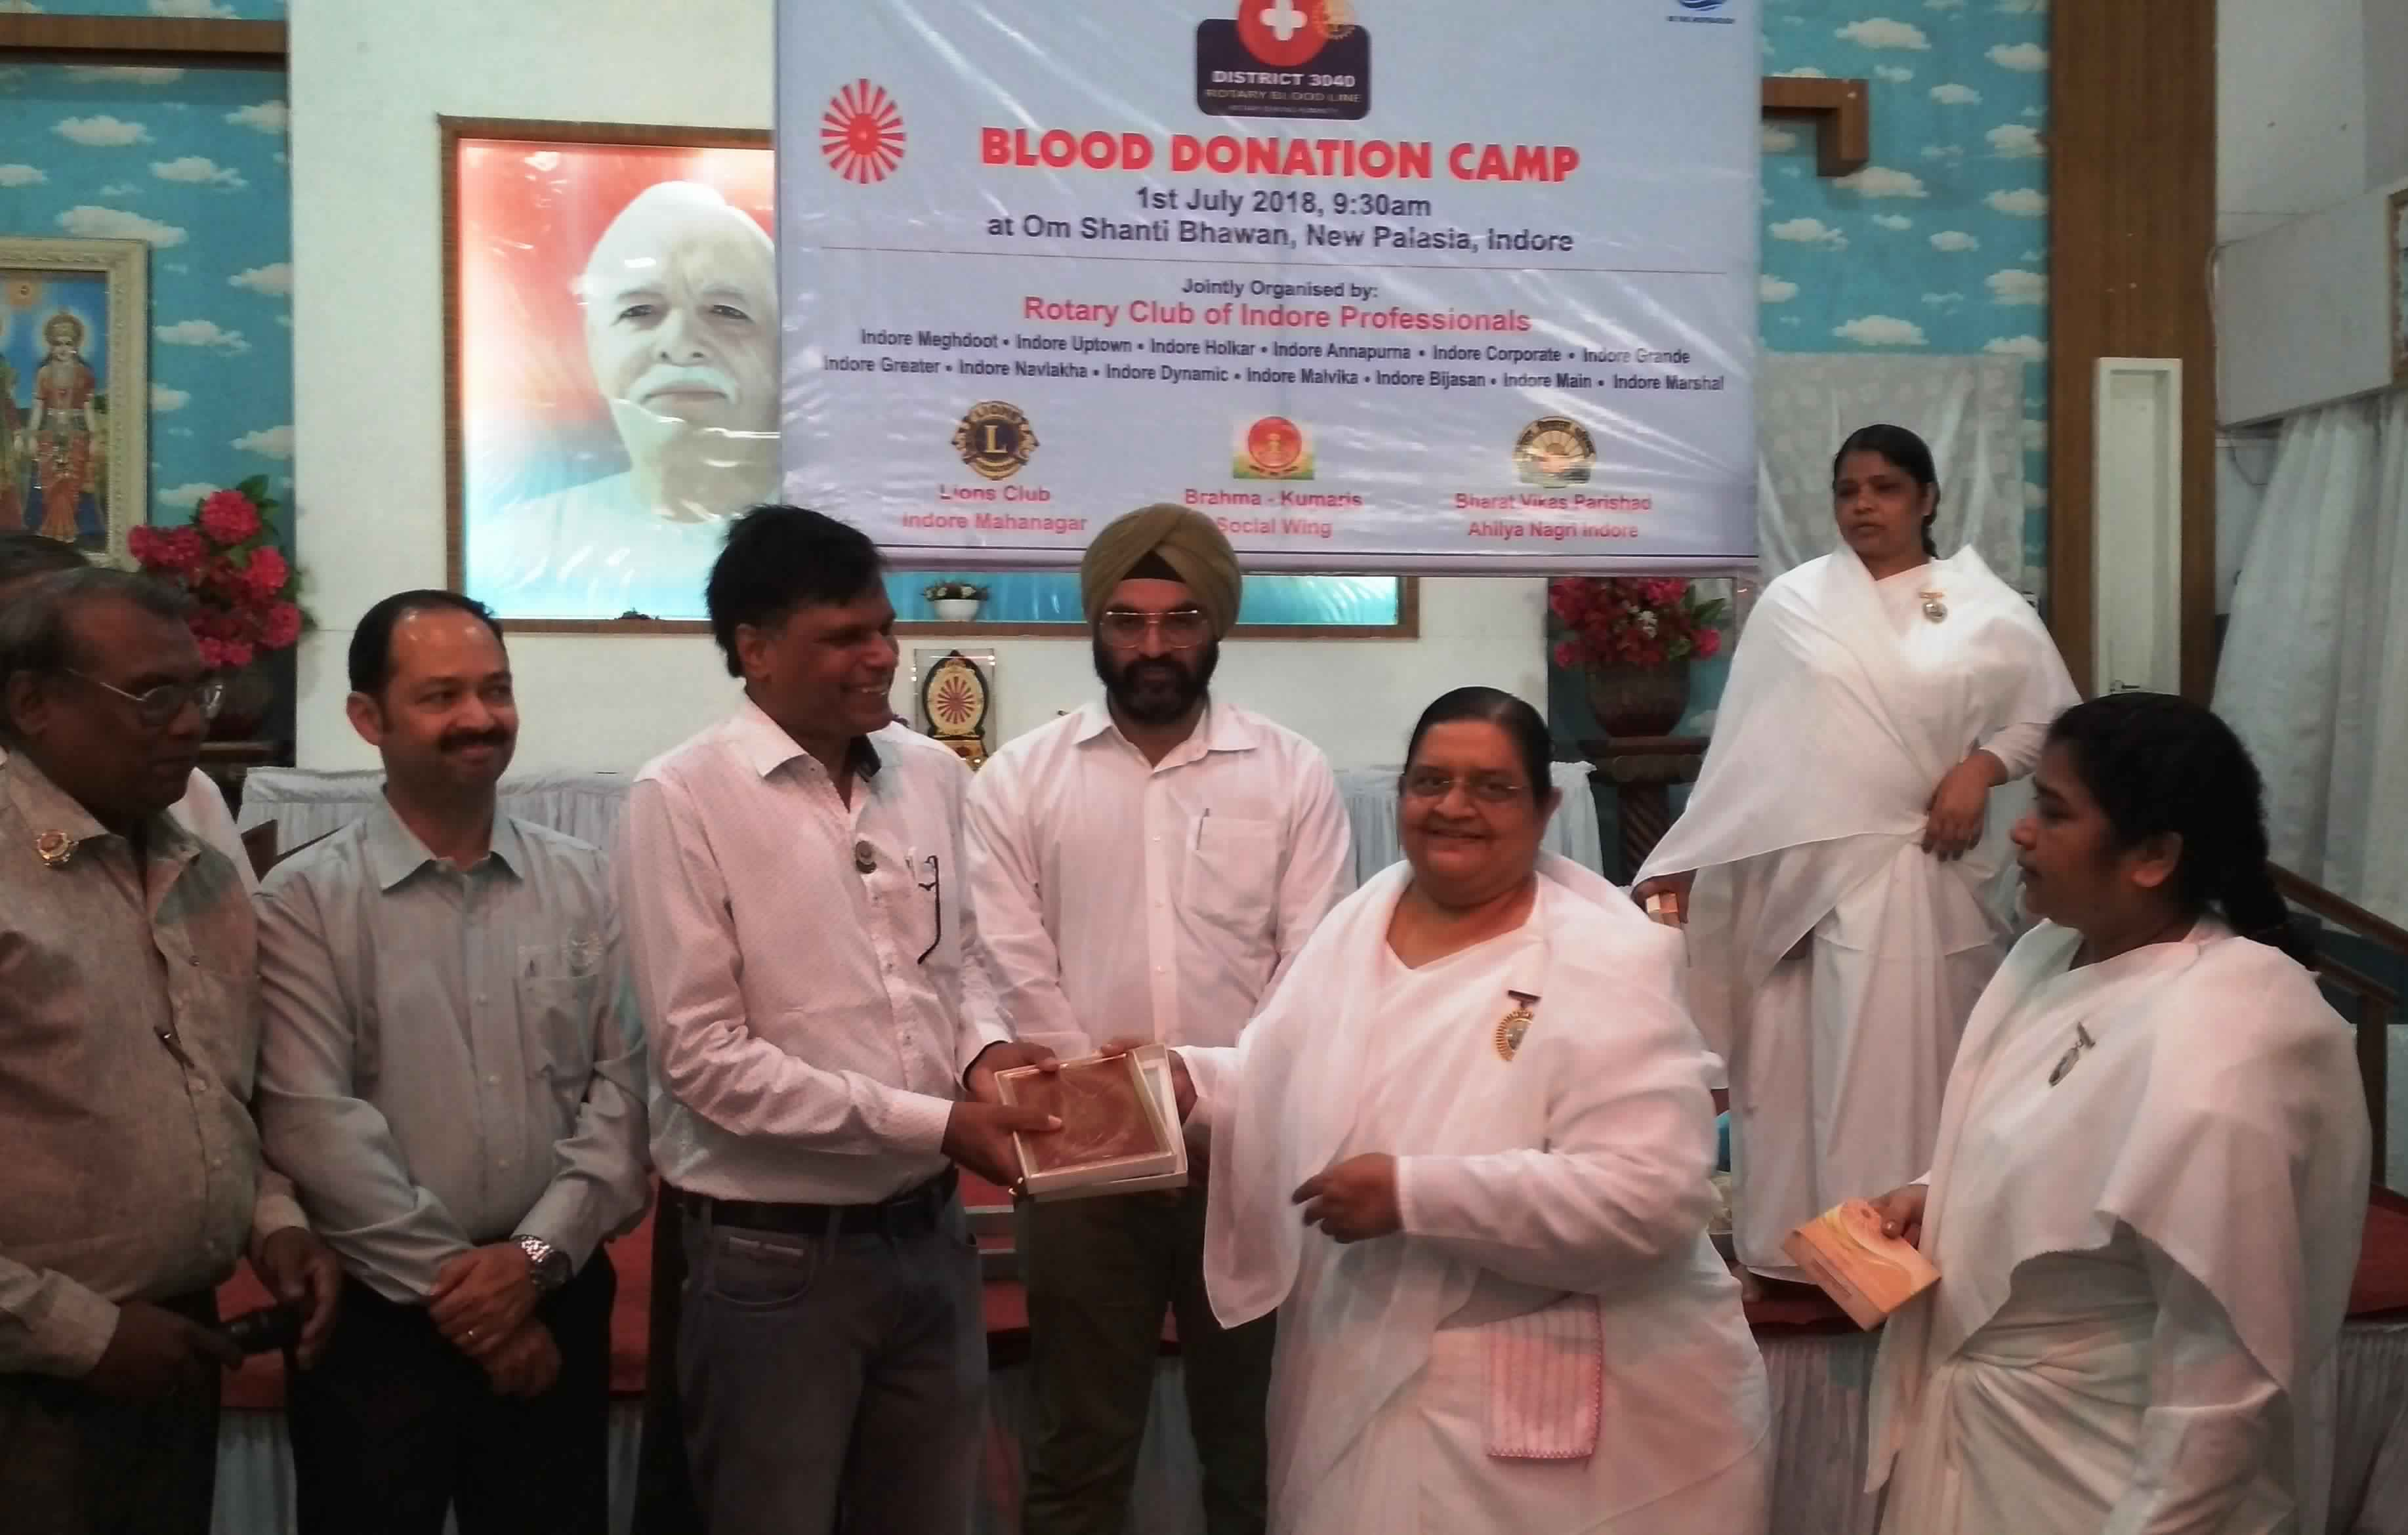 Blood Donation Camp at Om Shanti Bhawan, Indore